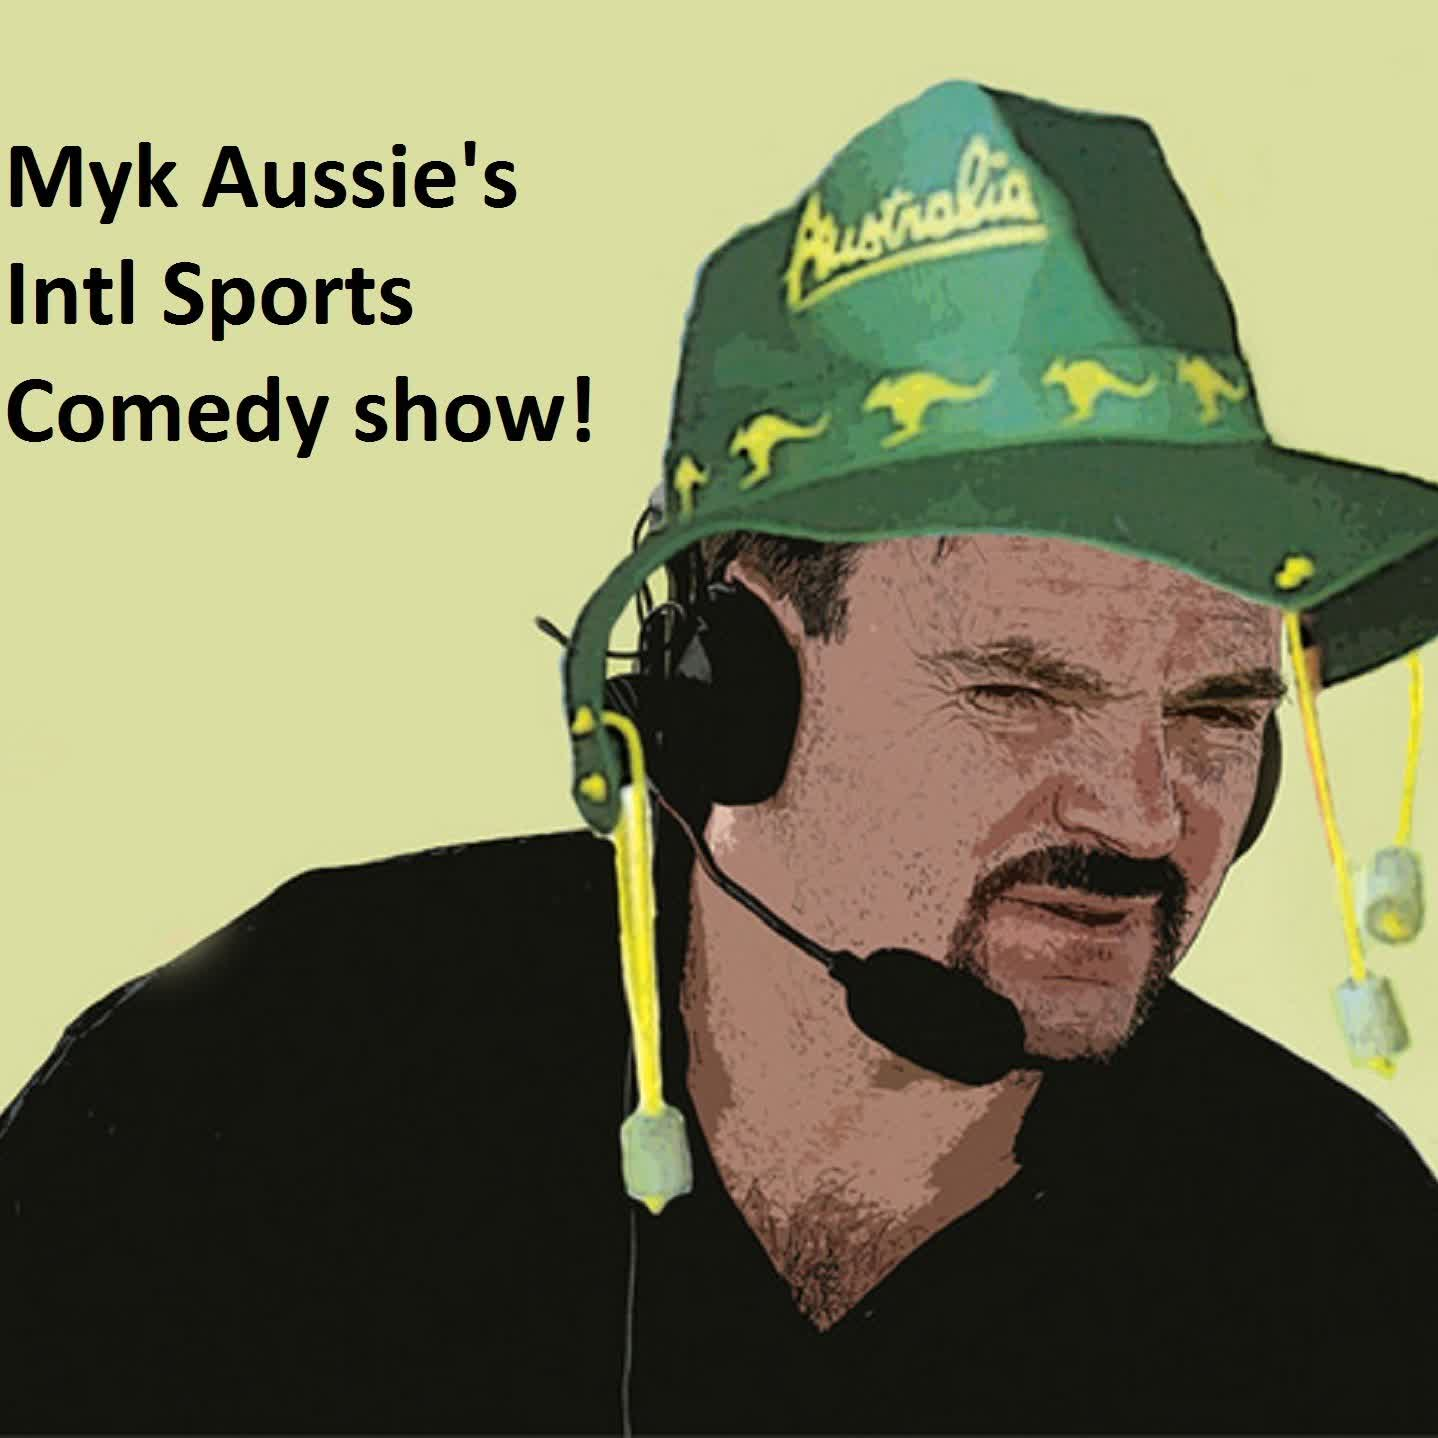 April 25, 2021 My Intl Sports show. NFL, CFL, AFL, Covid19 & sports in Canada, comedy, on NY's SportsRage, more.